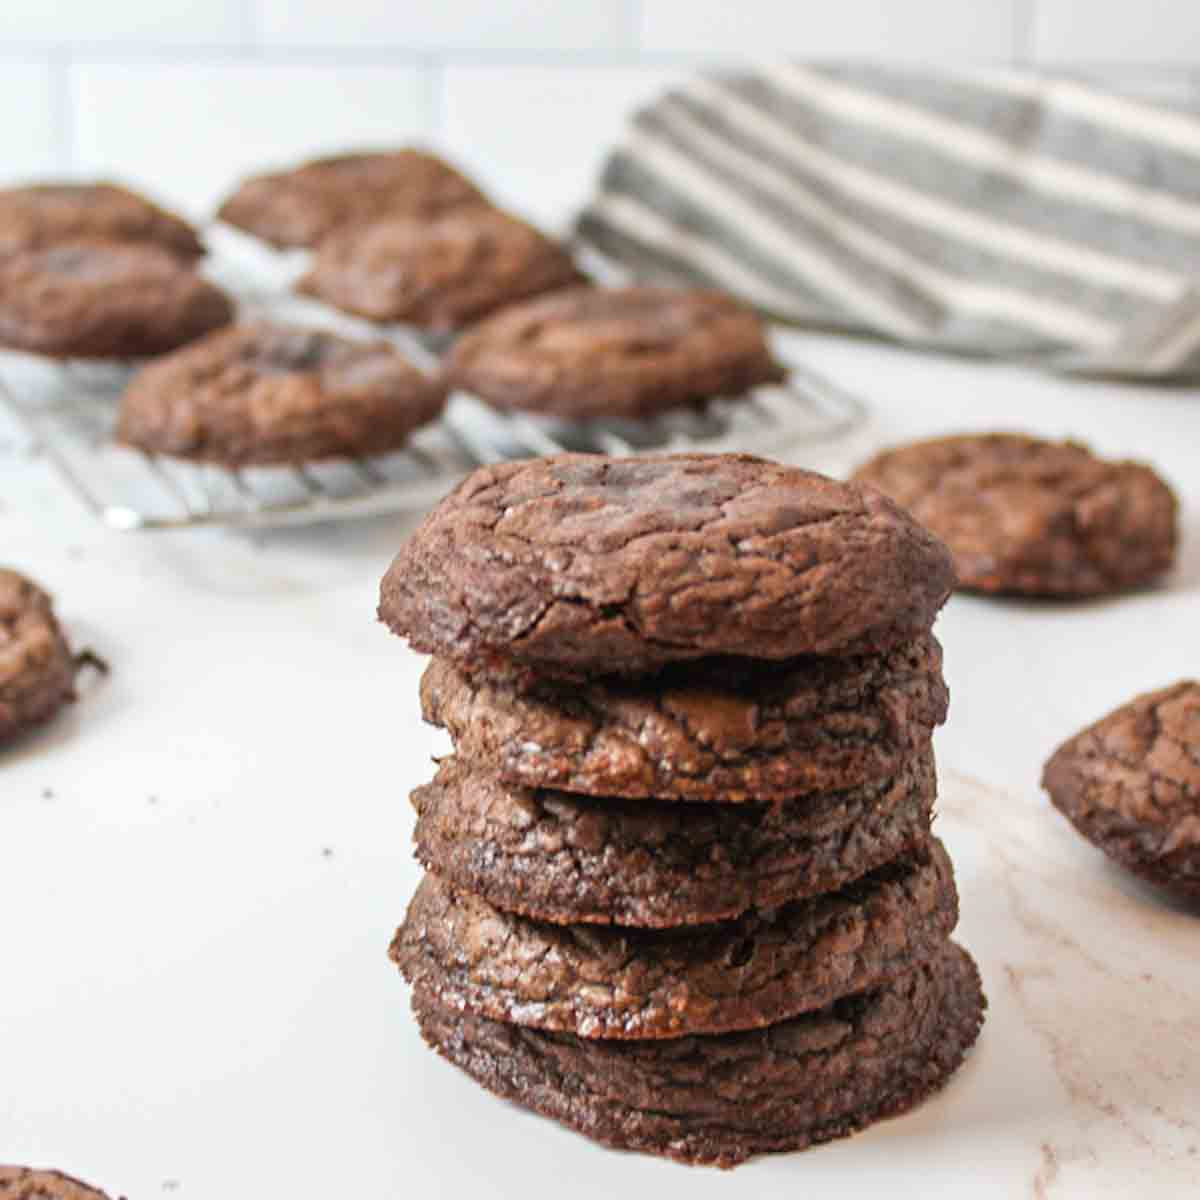 an upclose view of a stack of brownie mix cookies with more in the background